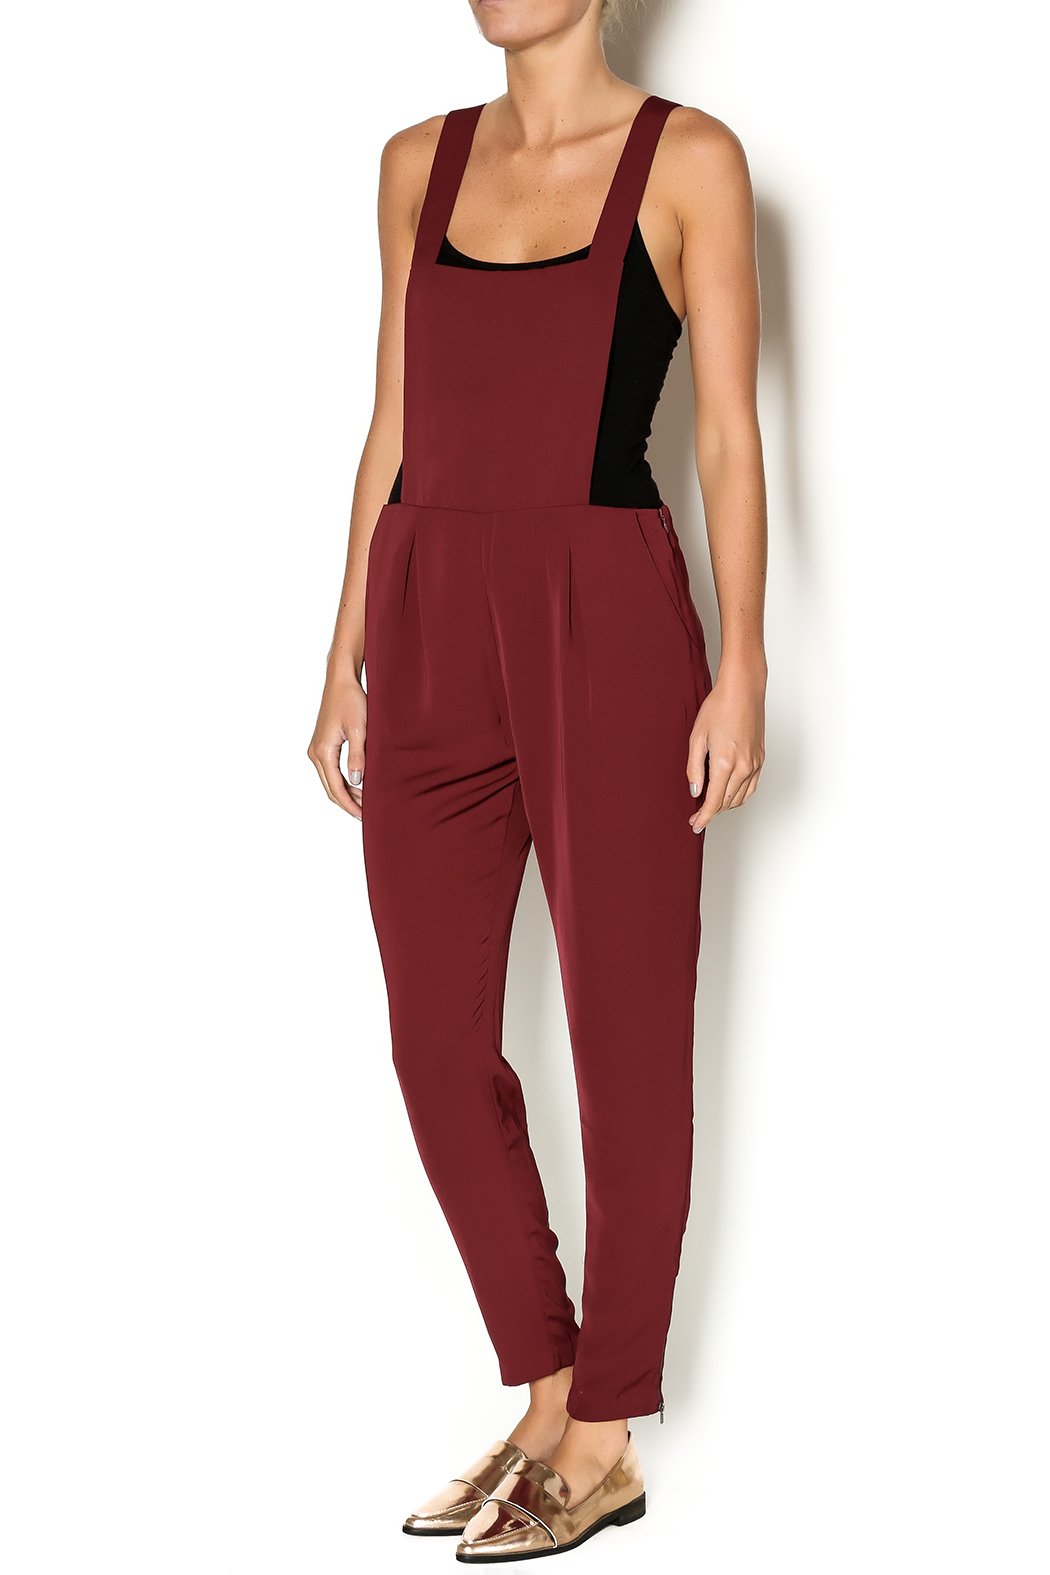 Potter's Pot Red Silk Overalls - Main Image